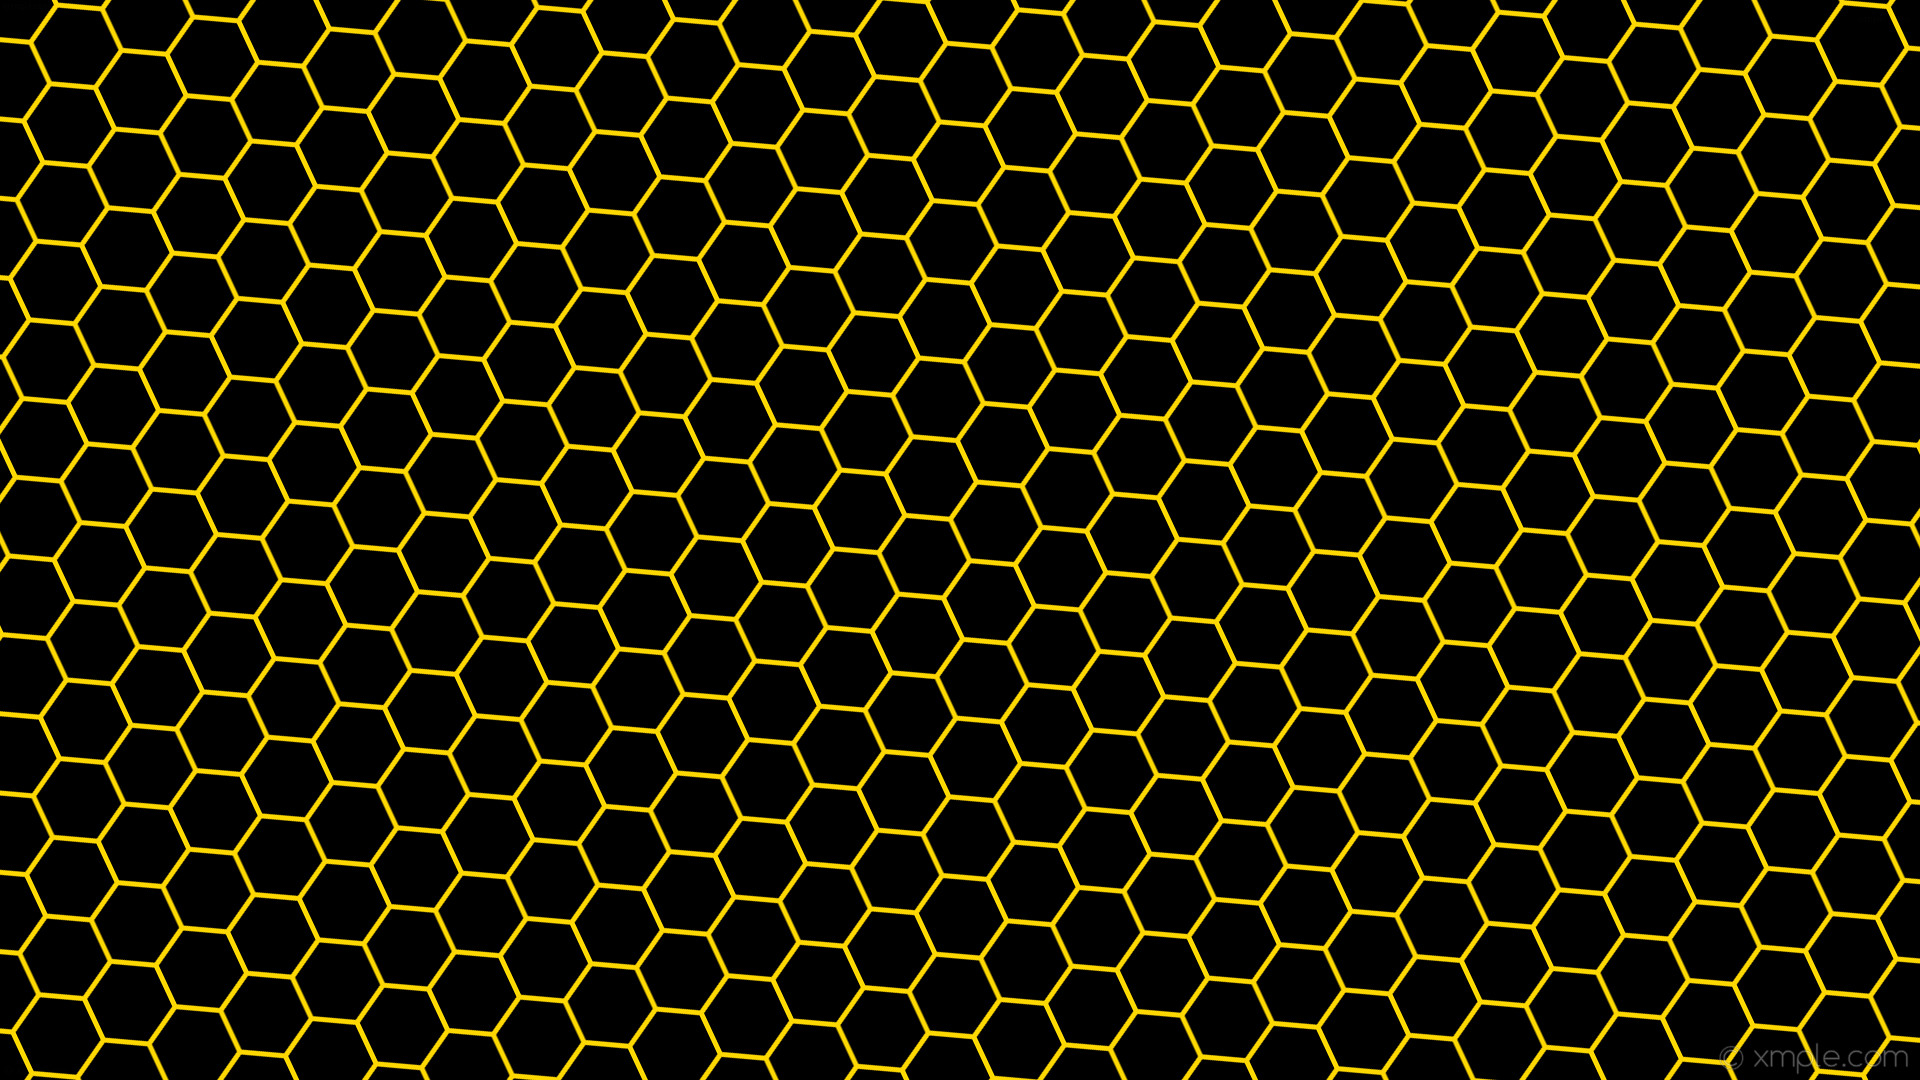 Yellow And Black Wallpaper Posted By John Sellers